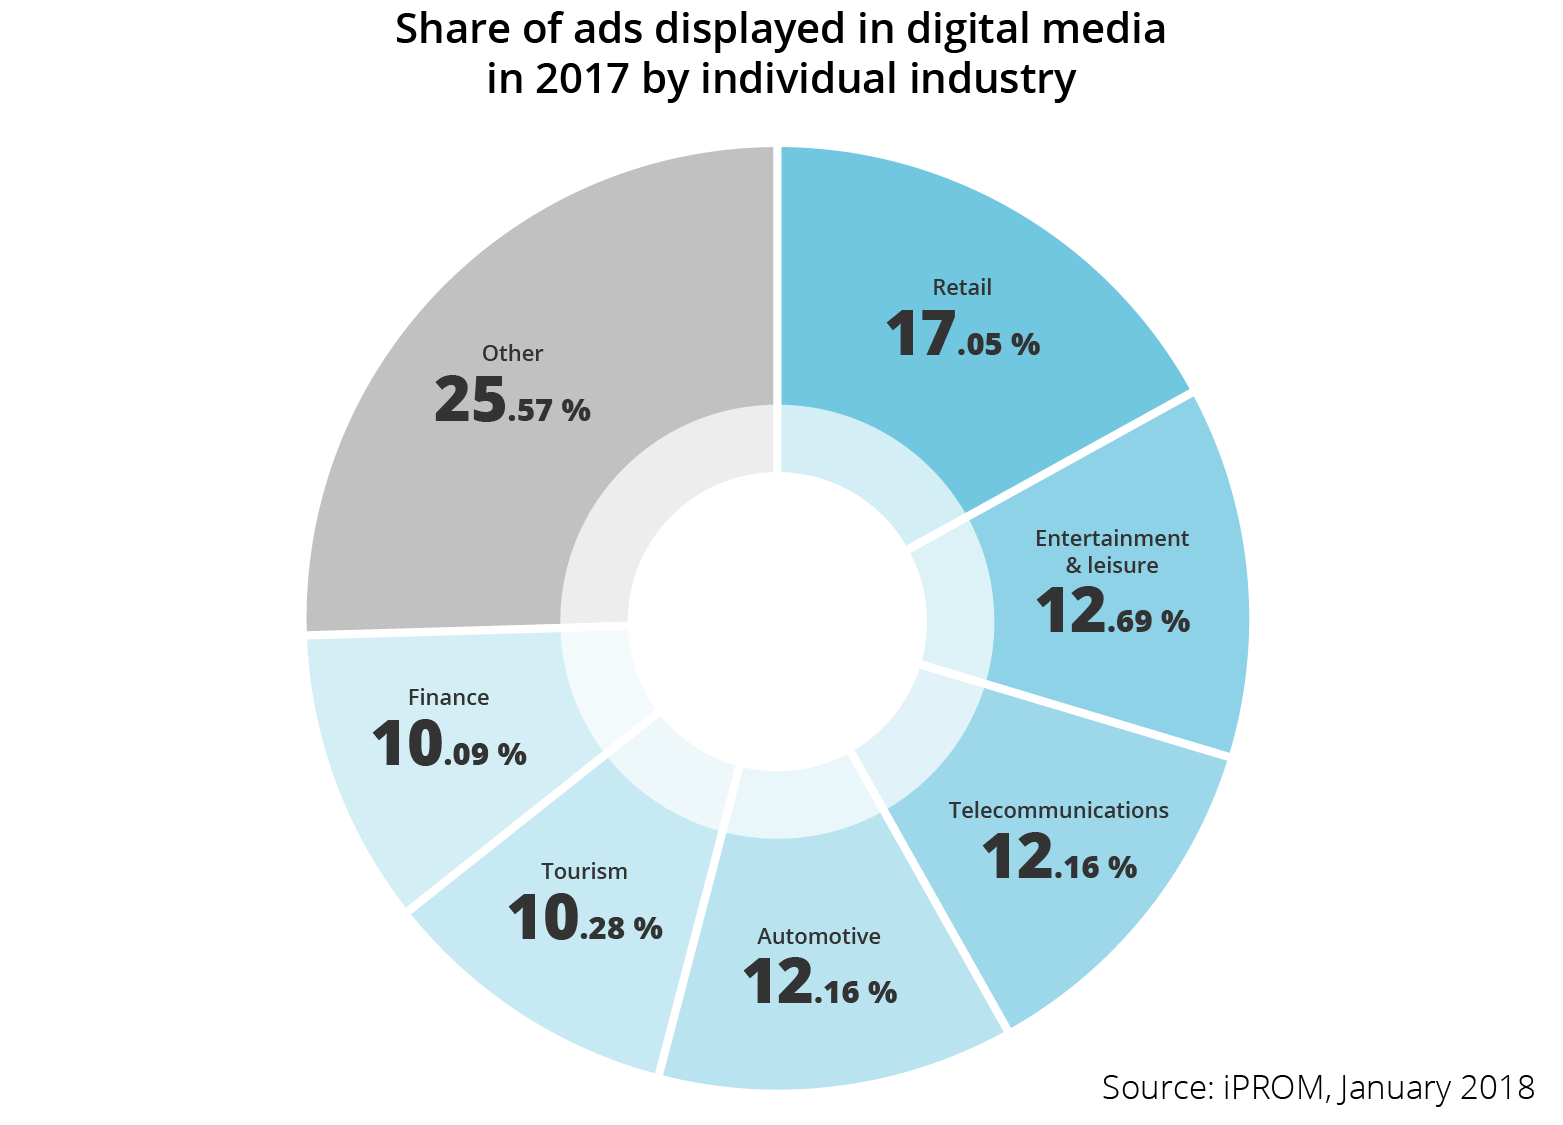 Shares of ads displayed in the digital media per industry in 2017 - iPROM - Press